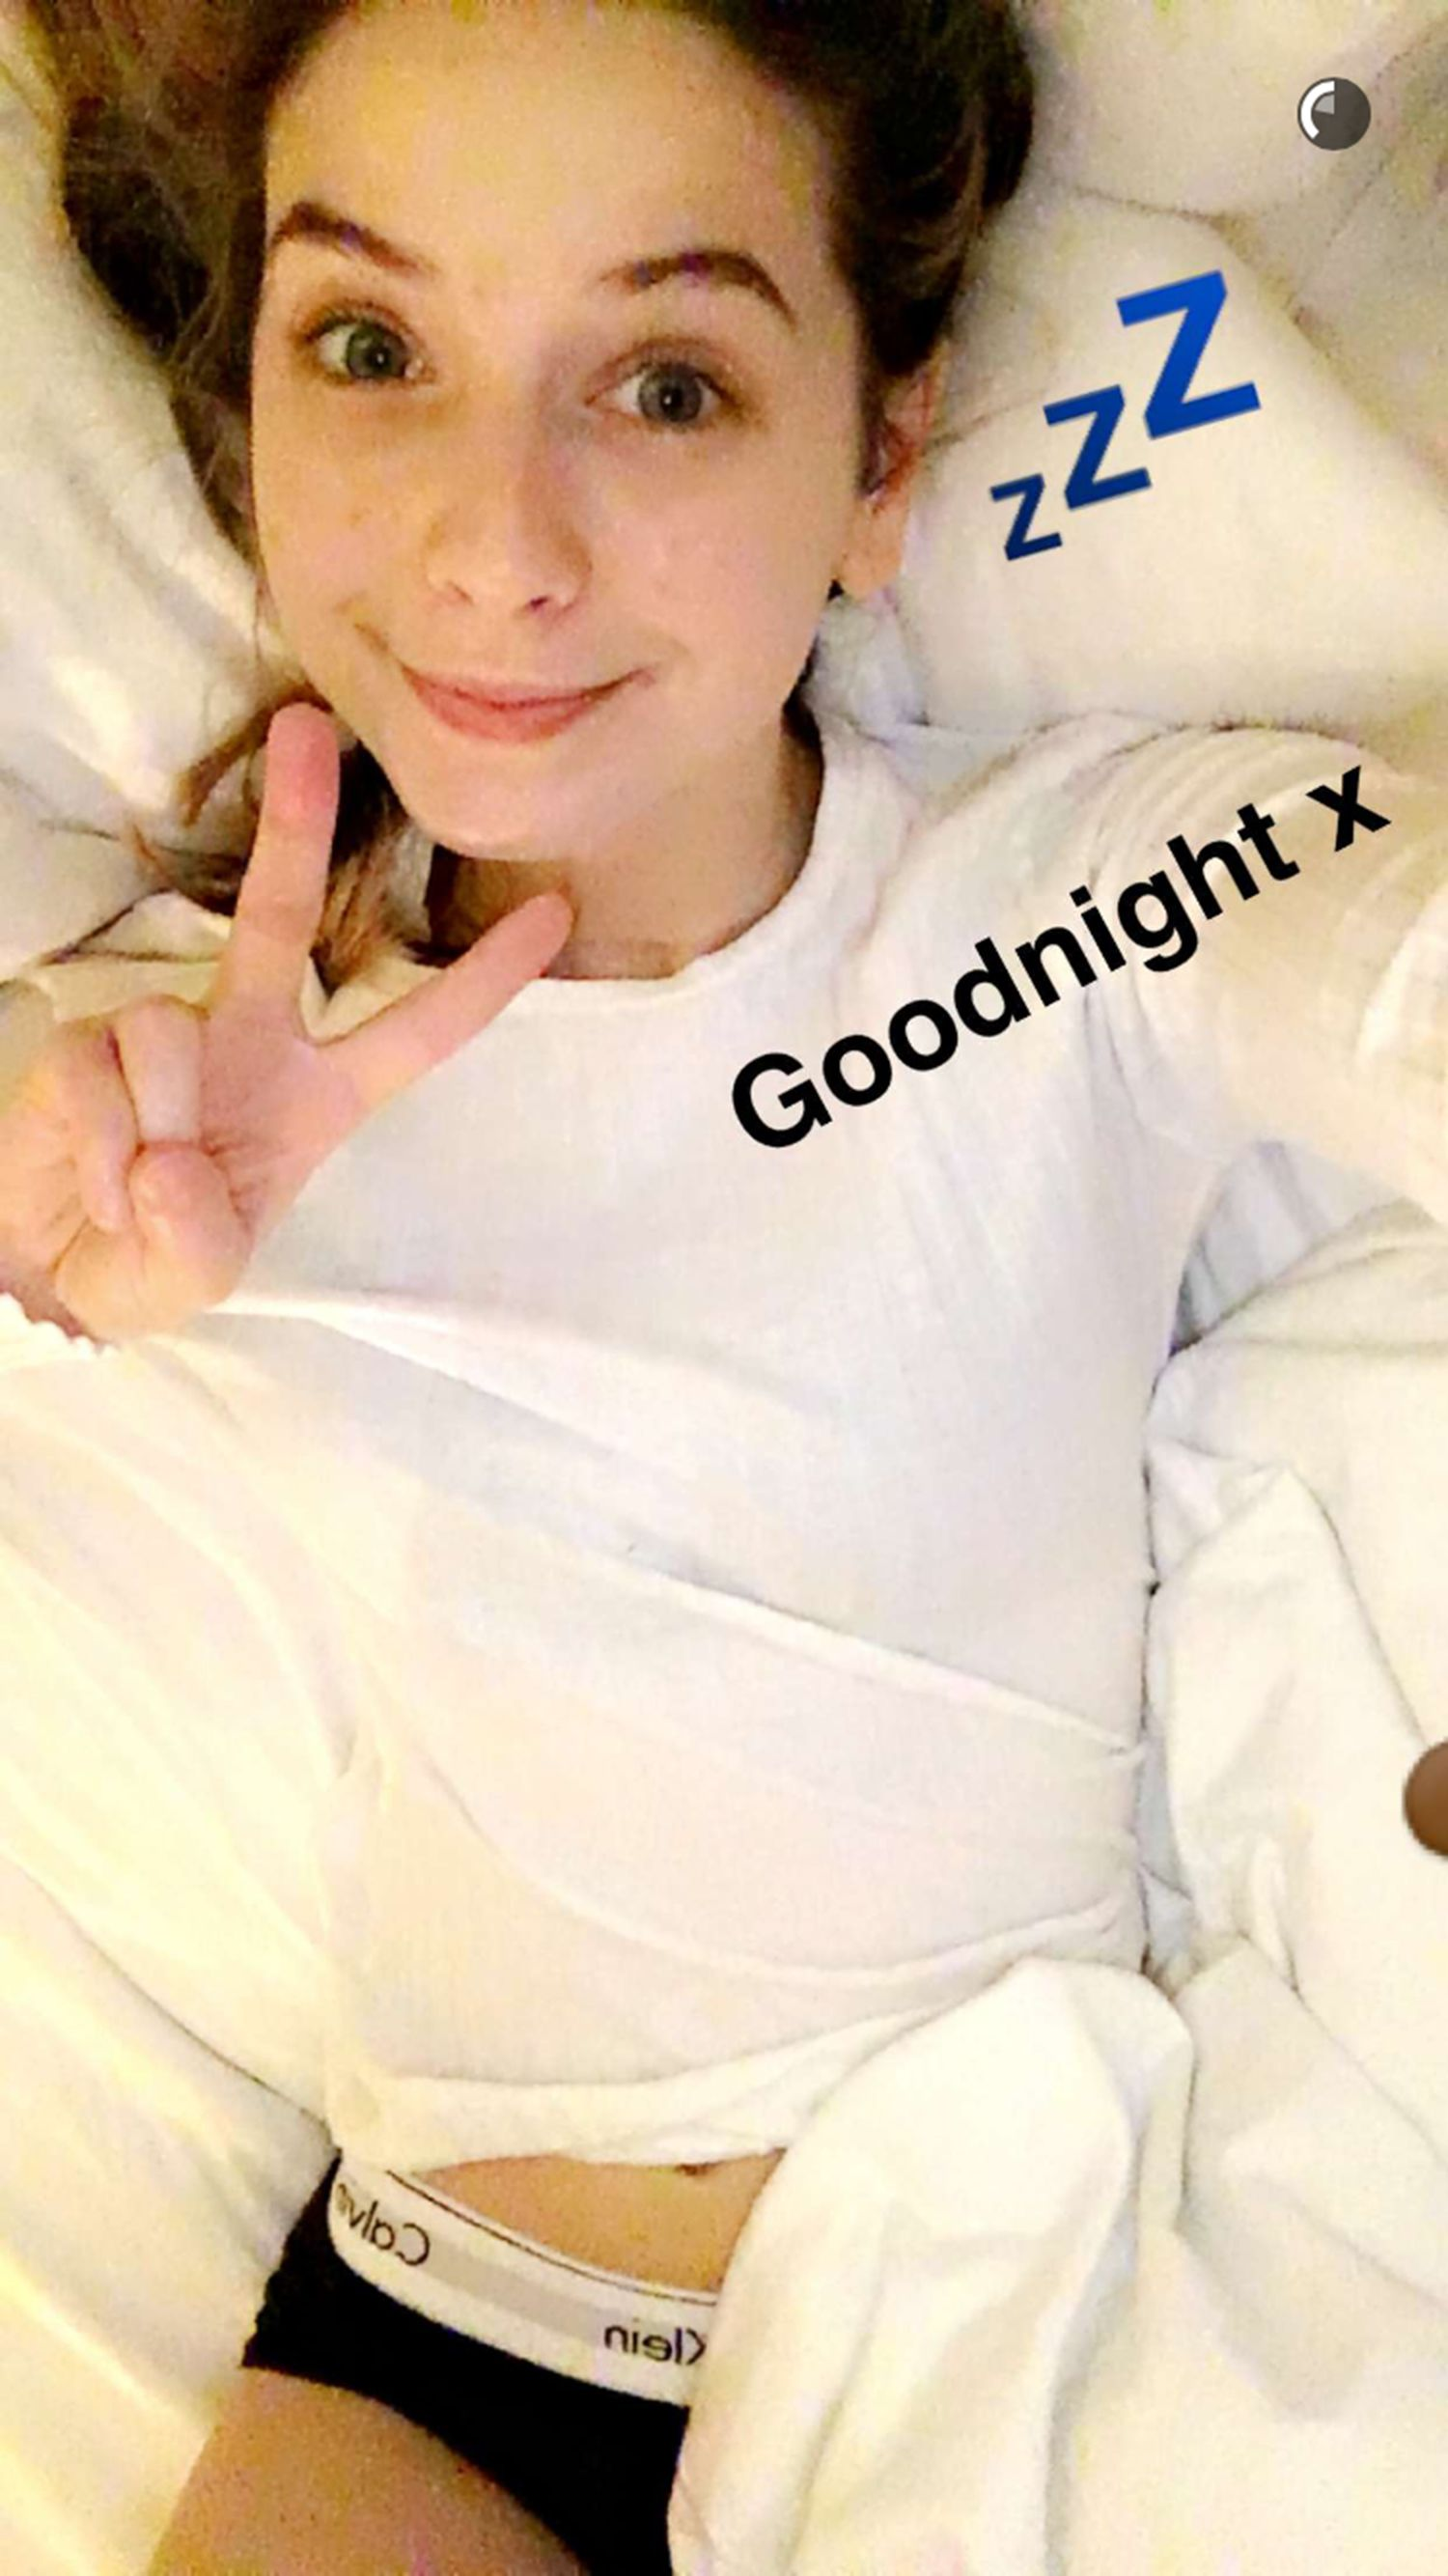 Youtube Star Zoella Poses In Her Knickers For Bedtime Snapchat